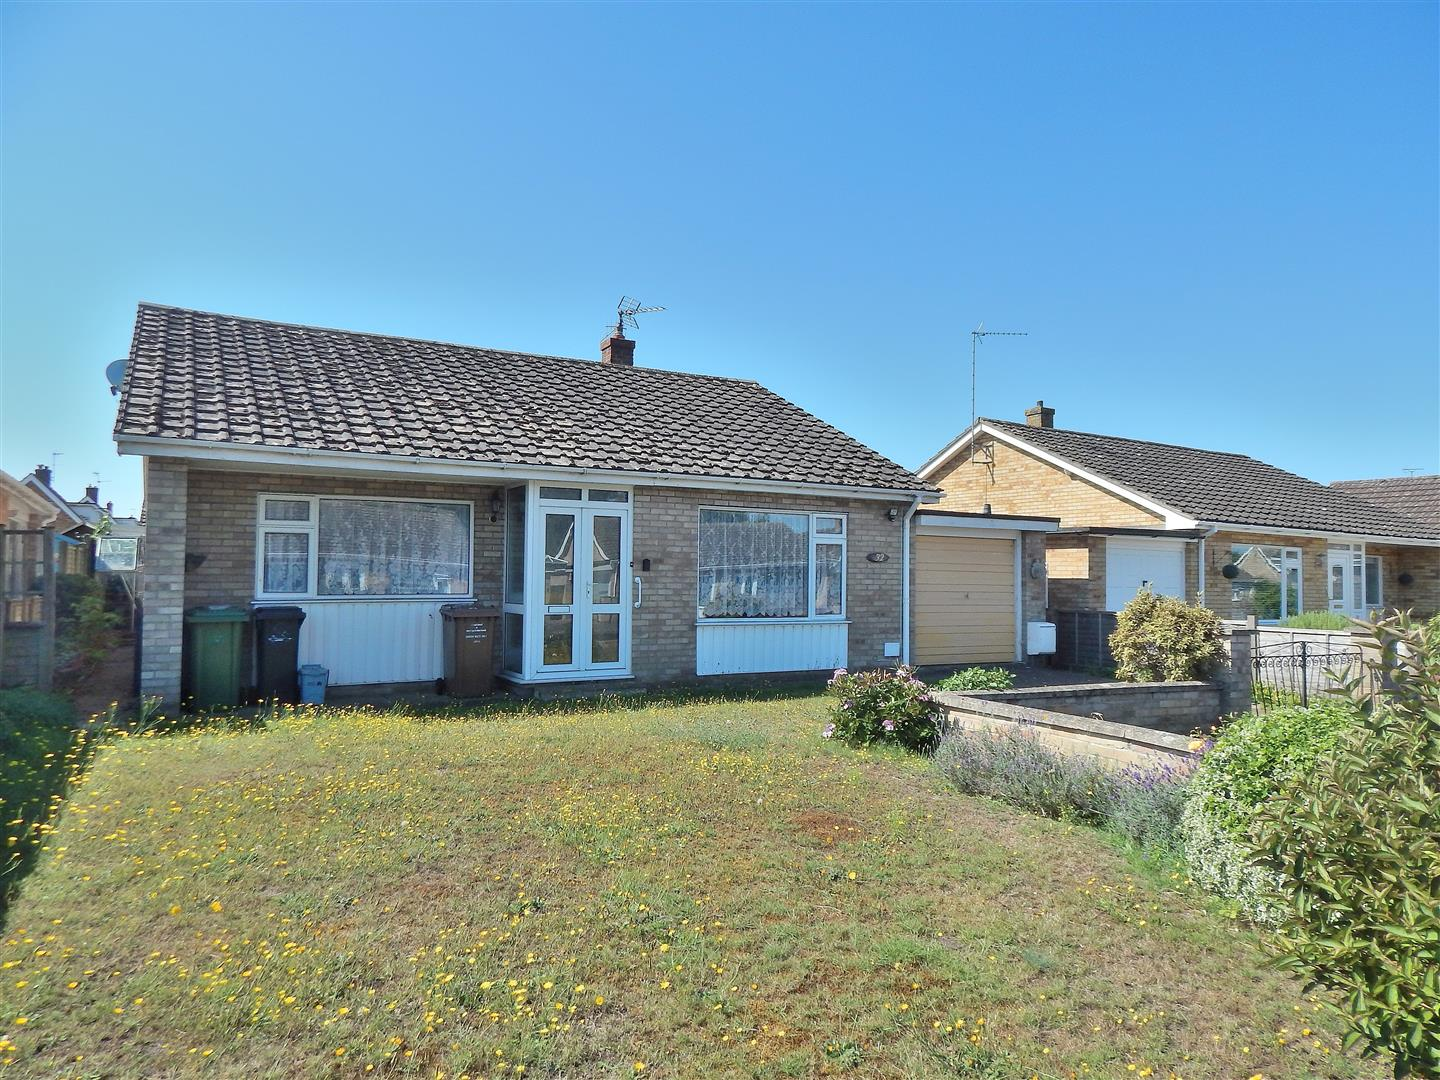 2 bed detached bungalow for sale in King's Lynn, PE31 6QH, PE31